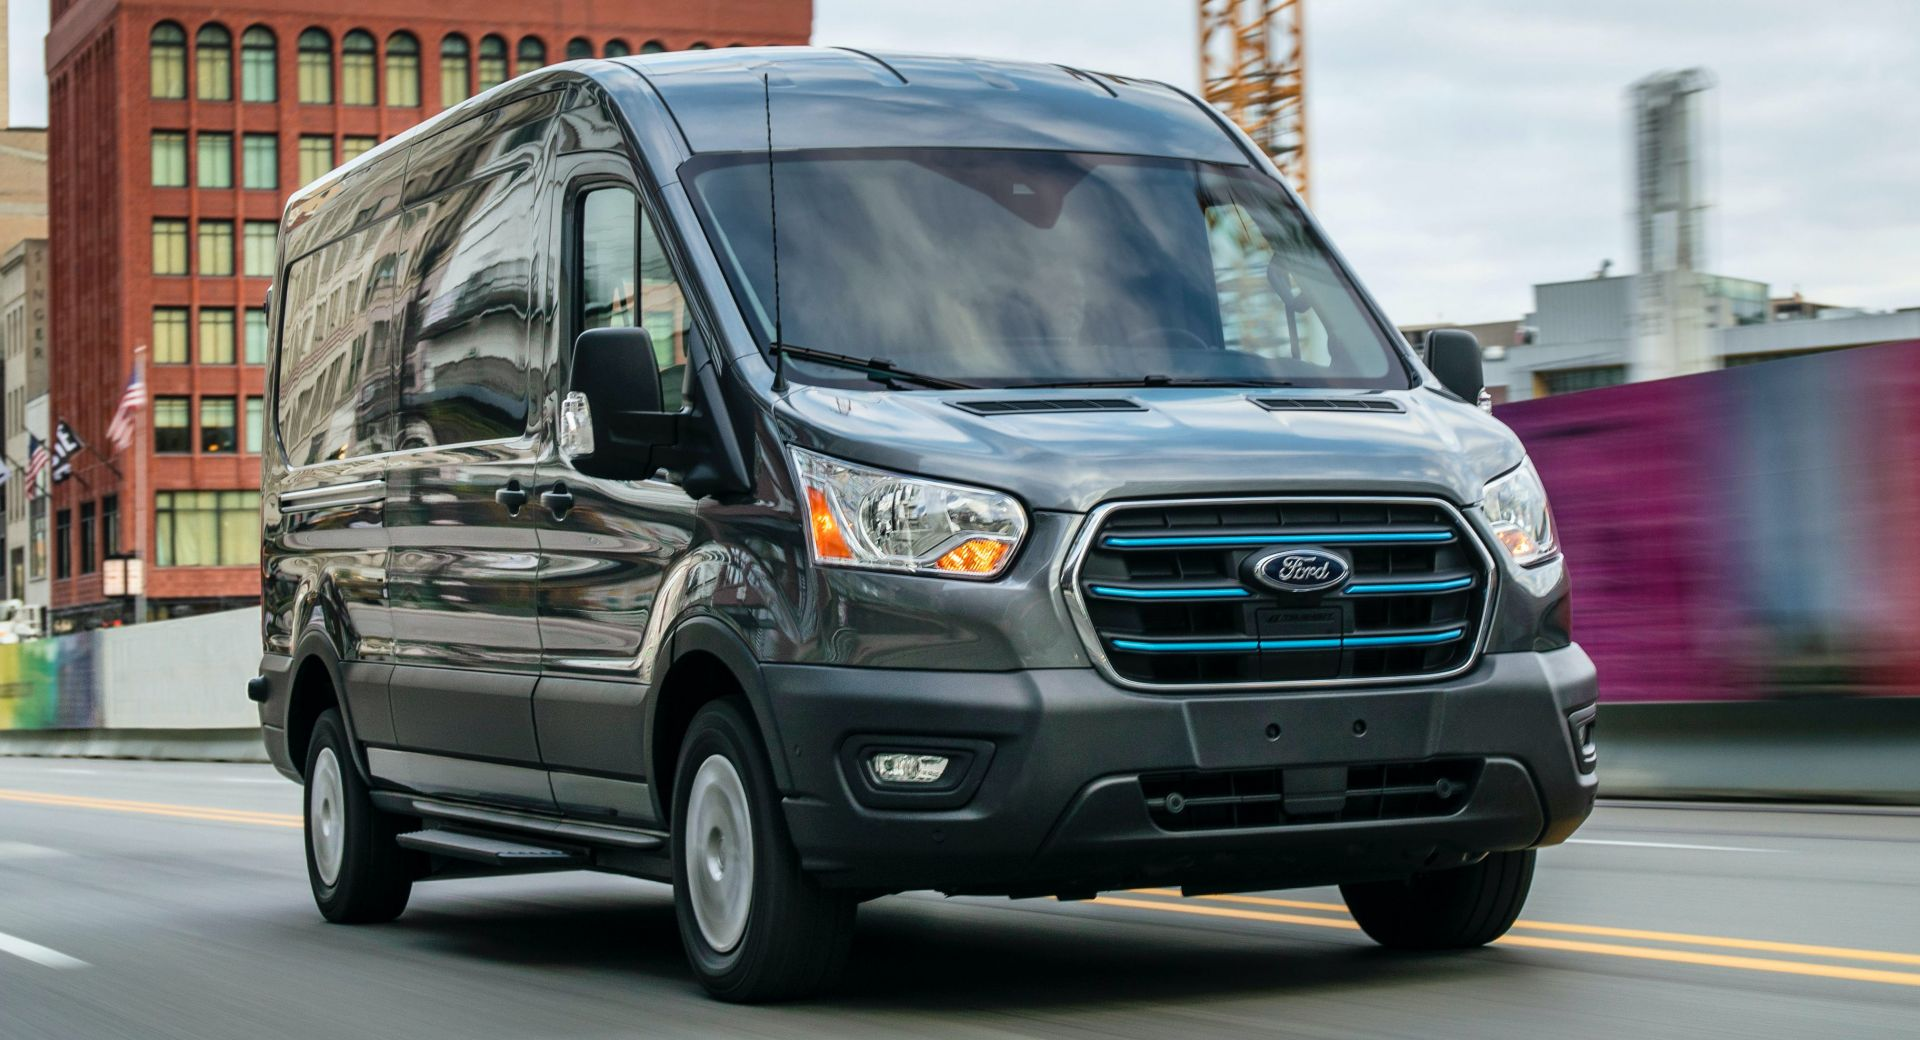 2022 Ford E-Transit electric van will make delivery services greener